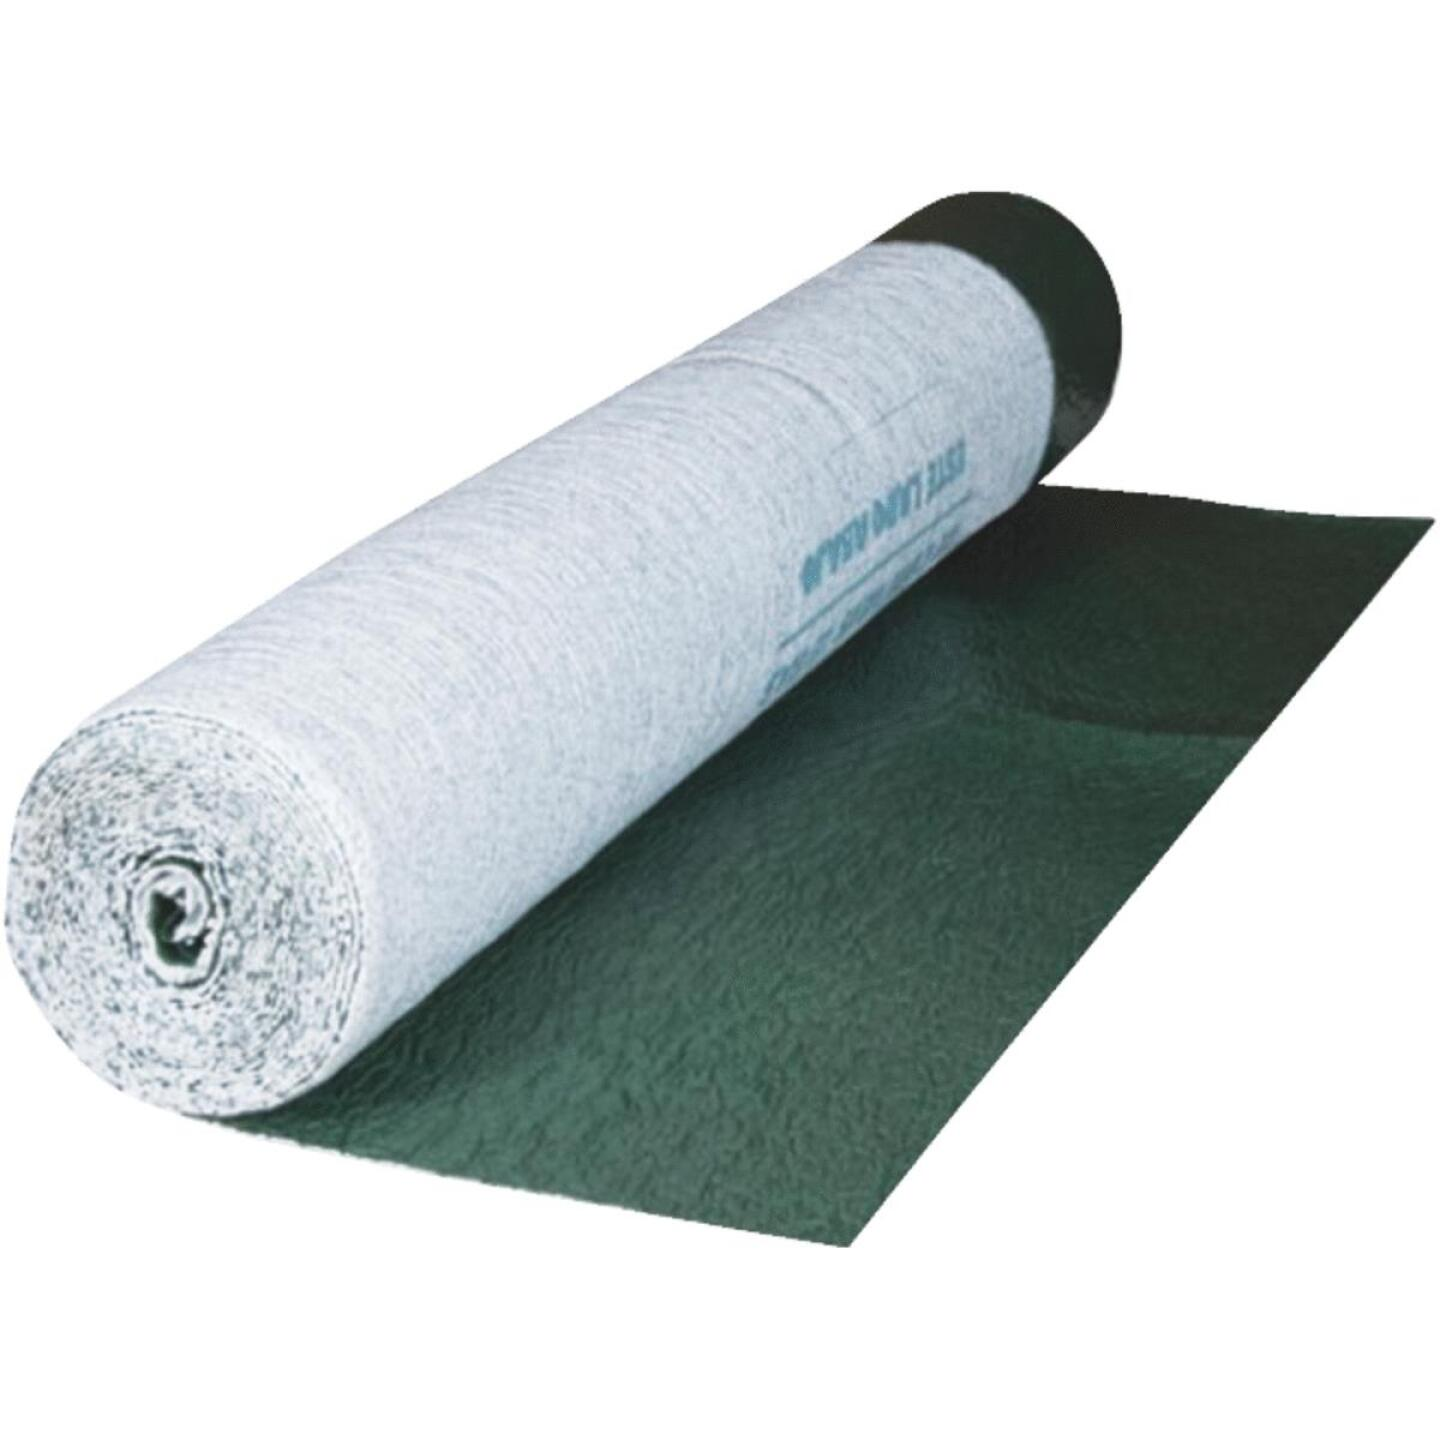 QEP First Step 40 In. W x 30 Ft. L Premium 3-in-1 Underlayment, 100 Sq. Ft./Roll Image 1